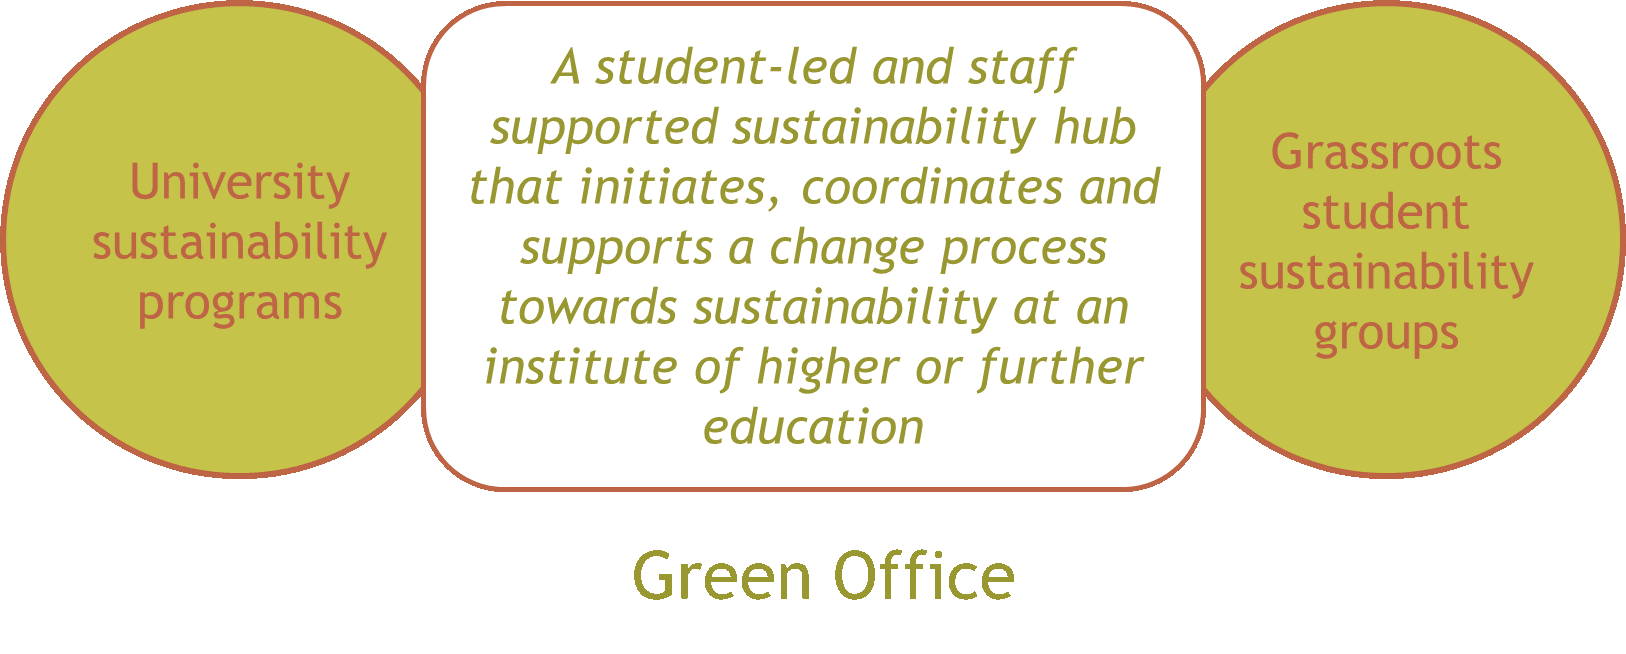 green office definition